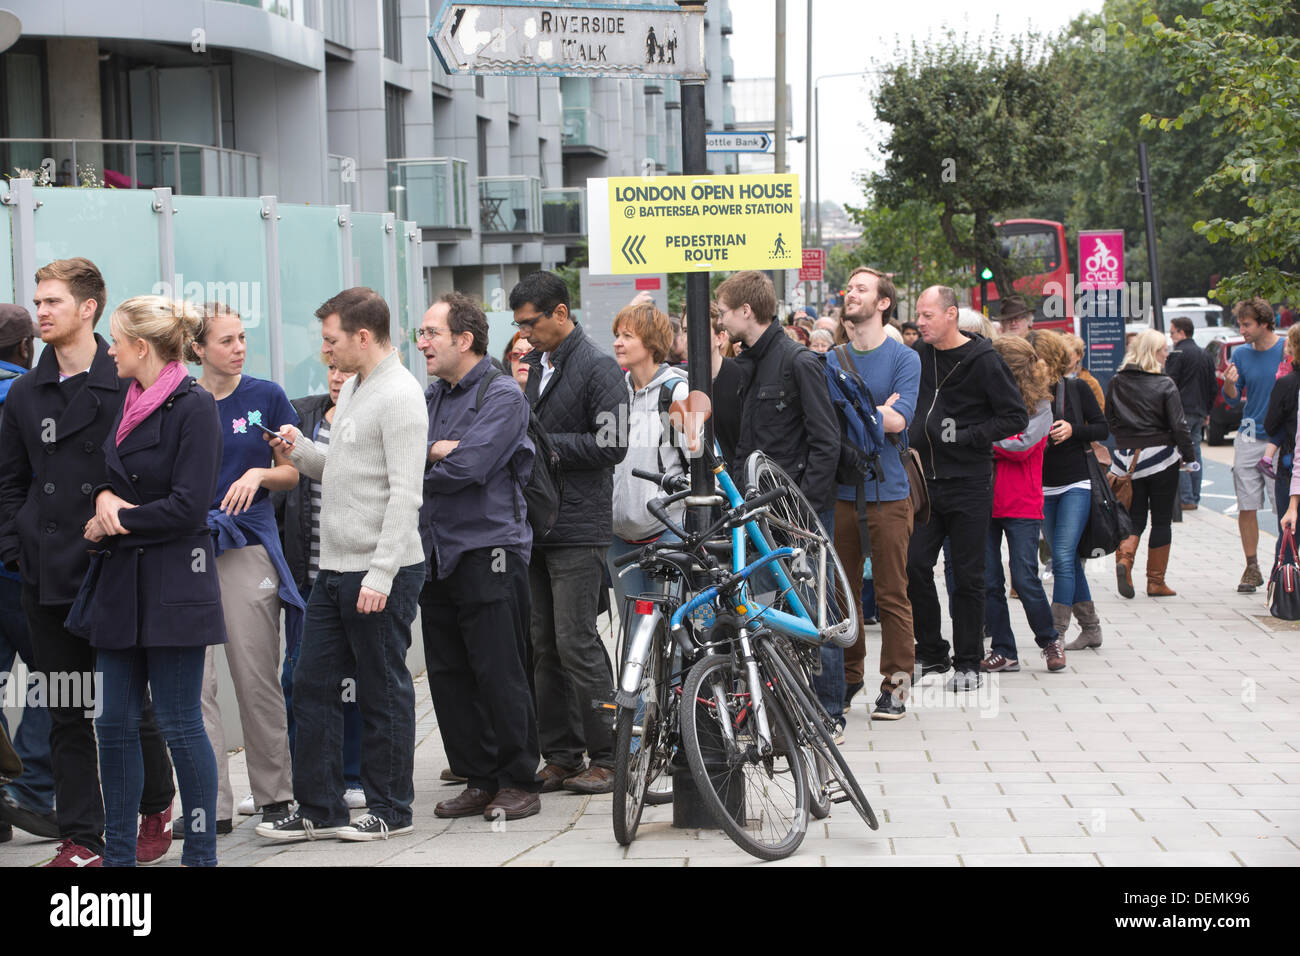 Battersea Power Station open house event, London, UK. 21st September 2013.  Picture shows hundreds of visitors queueing Stock Photo